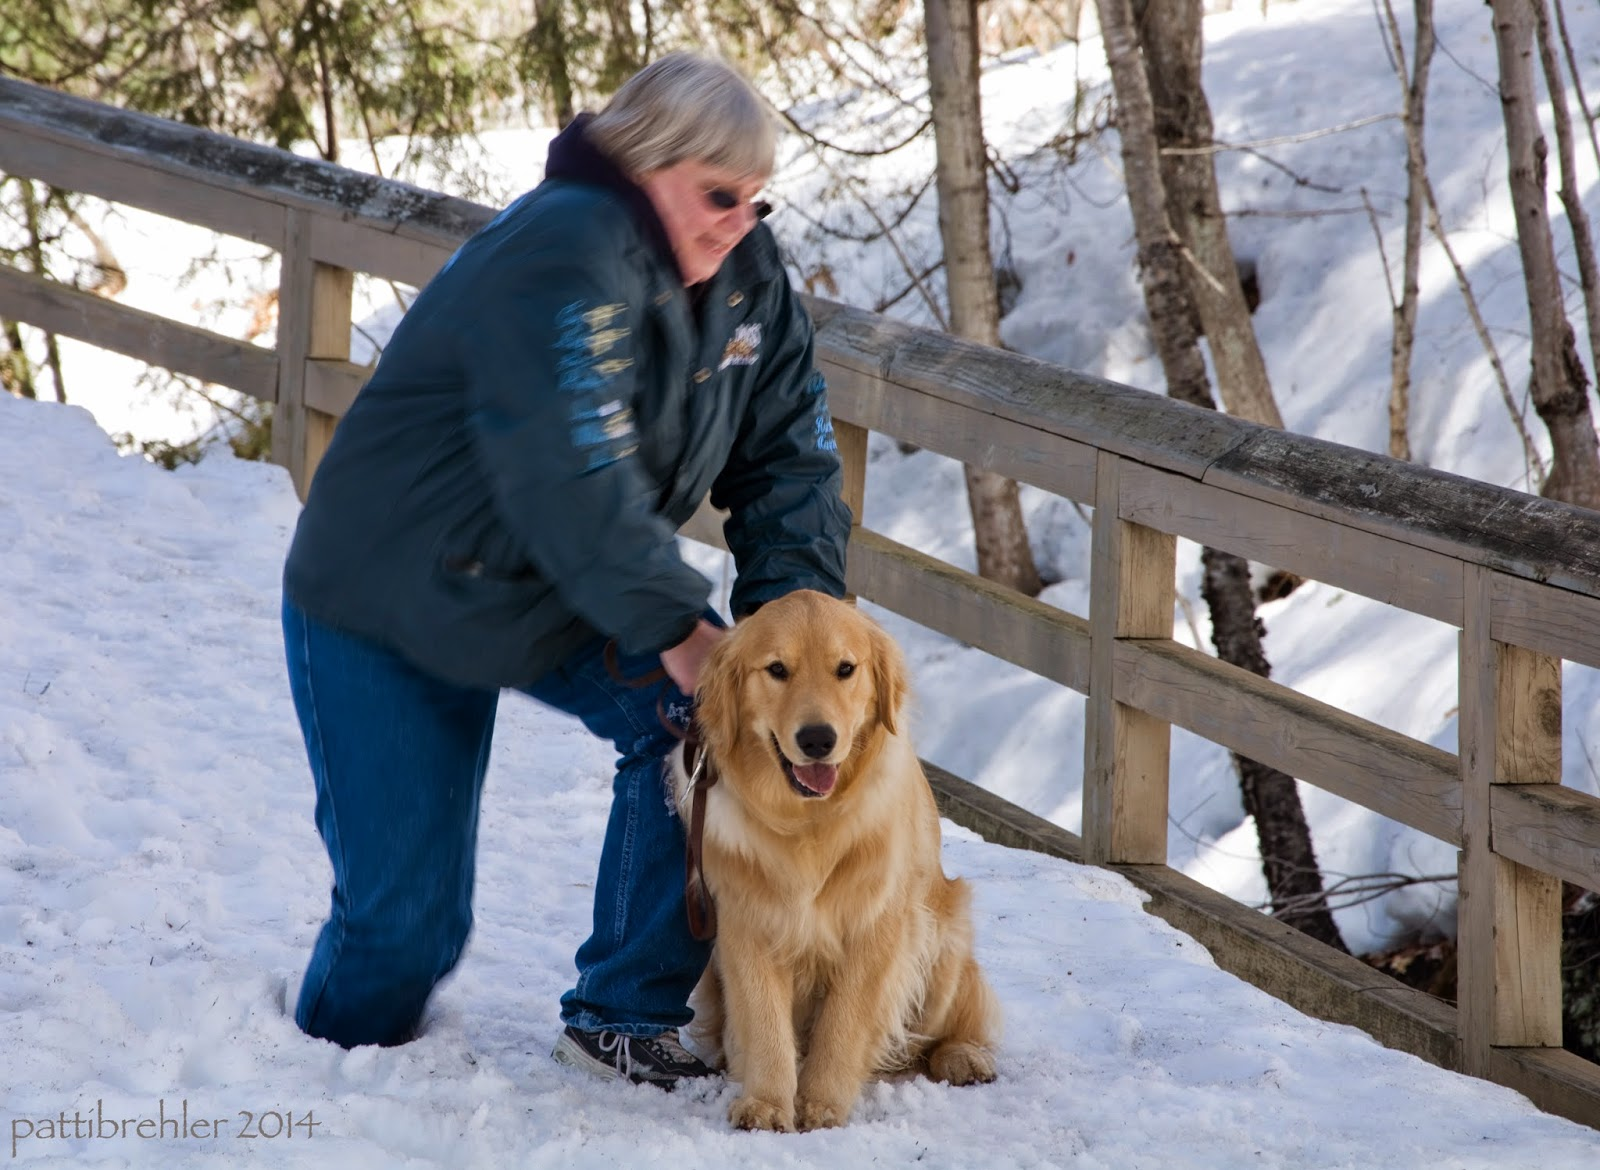 The same woman is bracing her hands on the golden retriever as she struggles to pull her right leg out of the snow. She is blurry, but the dog is in good focus.